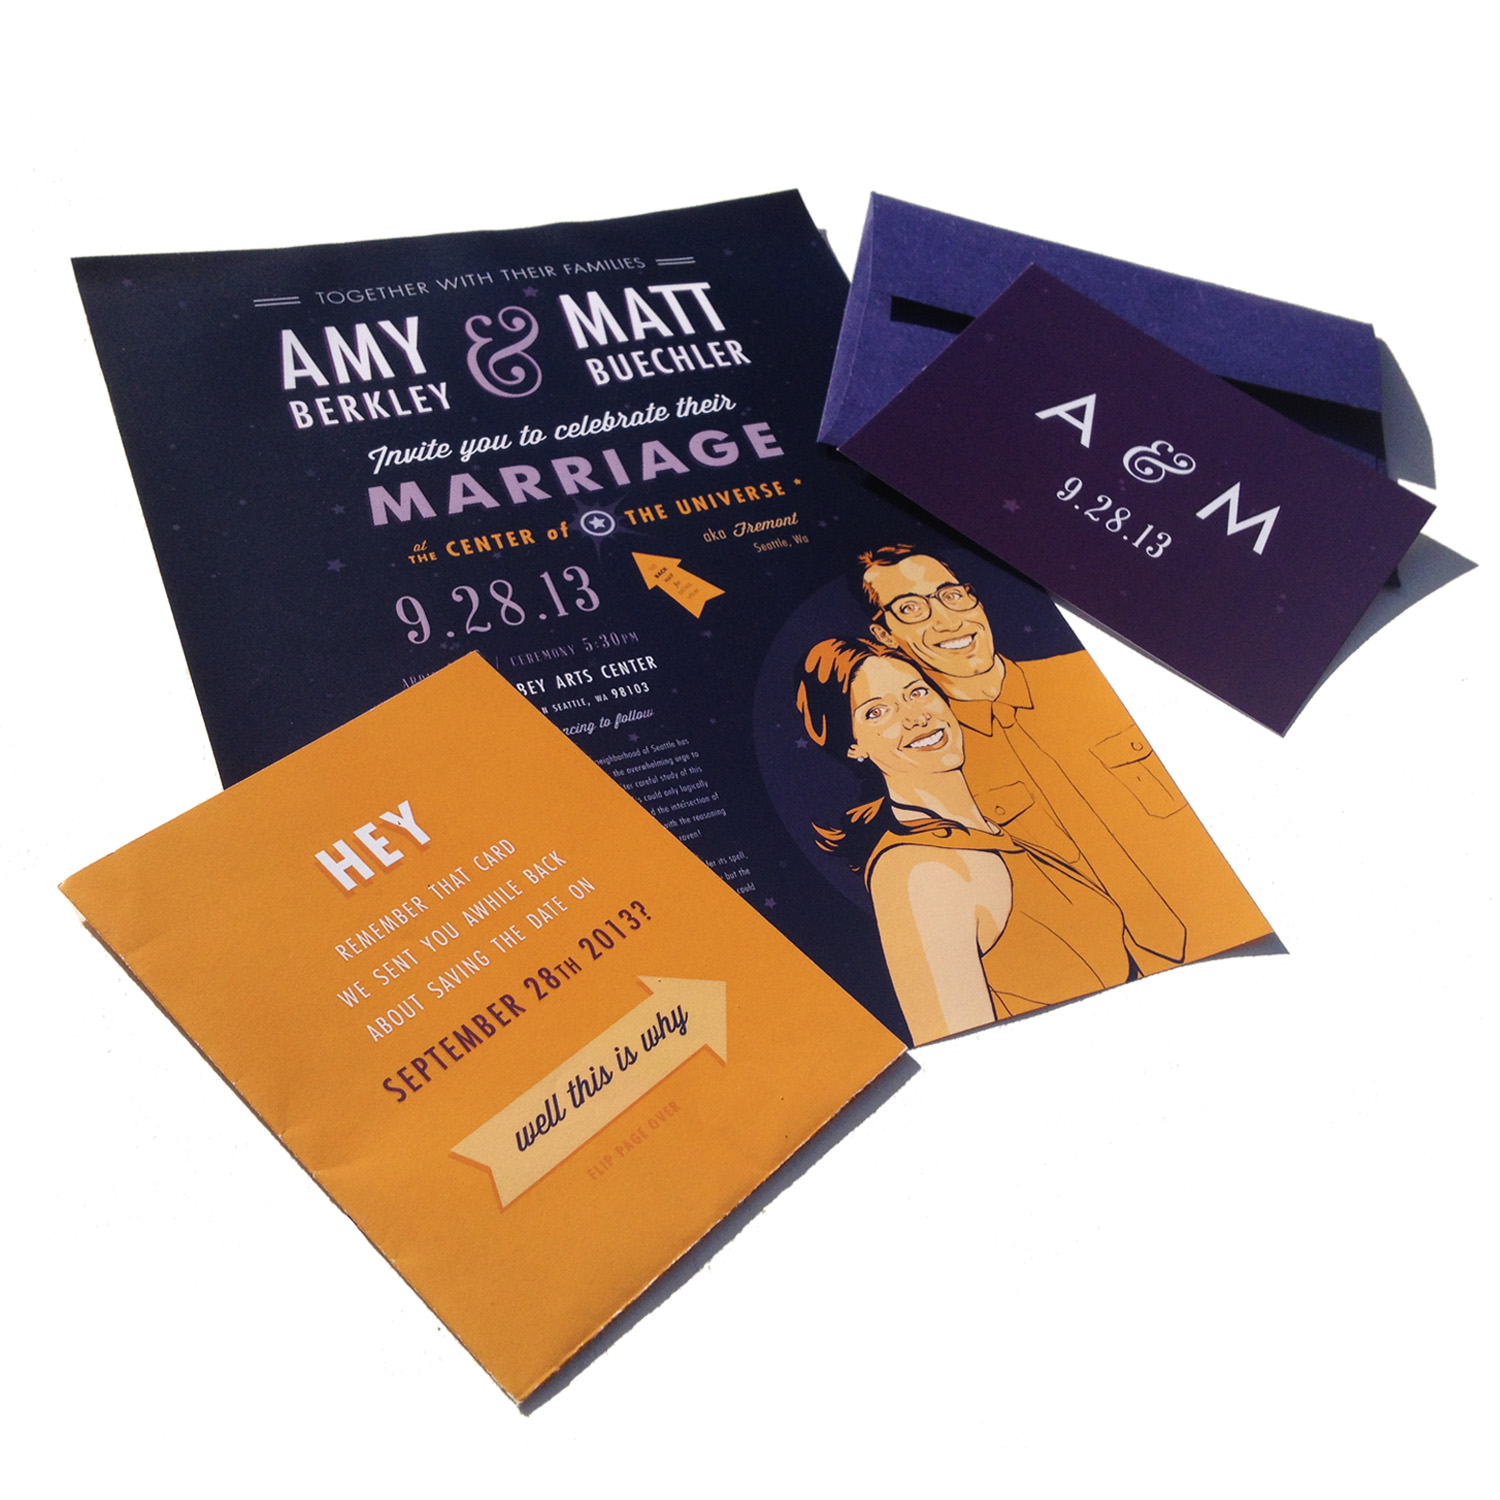 Business Cards, Flyers,  Invites & Stationary   P R I N T   D E S I G N